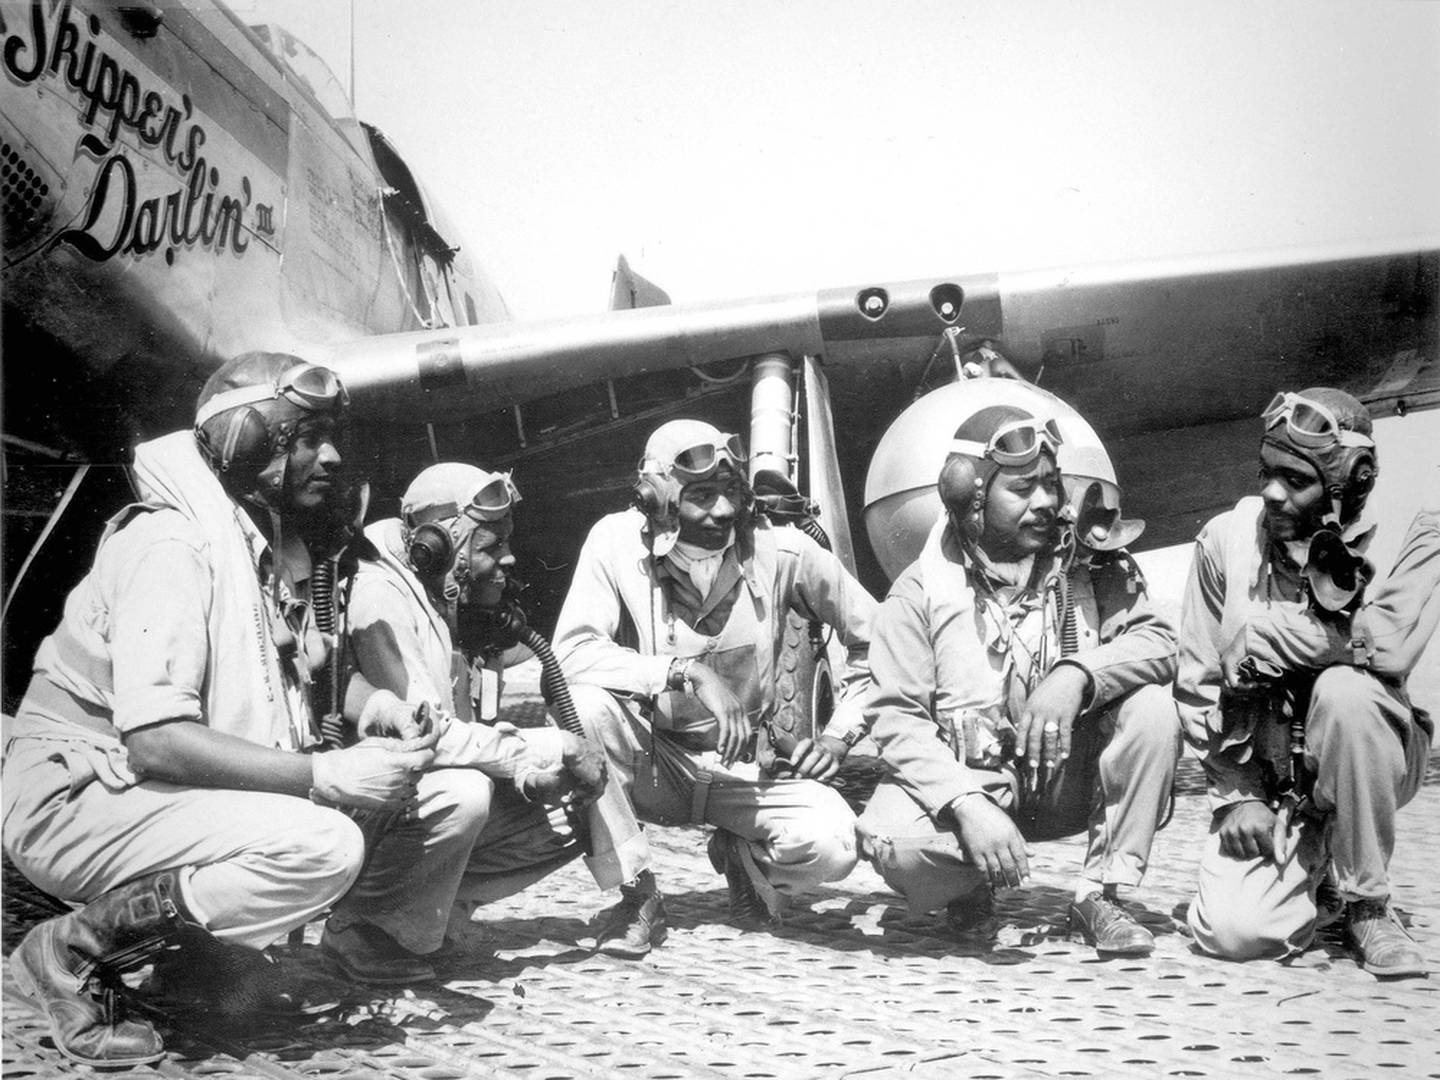 (From left) Lt. Dempsey W. Morgan, Lt. Carrol S. Woods, Lt. Robert H. Nelson Jr., Capt. Andrew D. Turner and Lt. Clarence D. Lester, shown in Ramitelli, Italy, were pilots with the 332nd Fighter Group. The airmen with the elite, all-black fighter group were better known as Tuskegee Airmen. (U.S. Air Force photo)